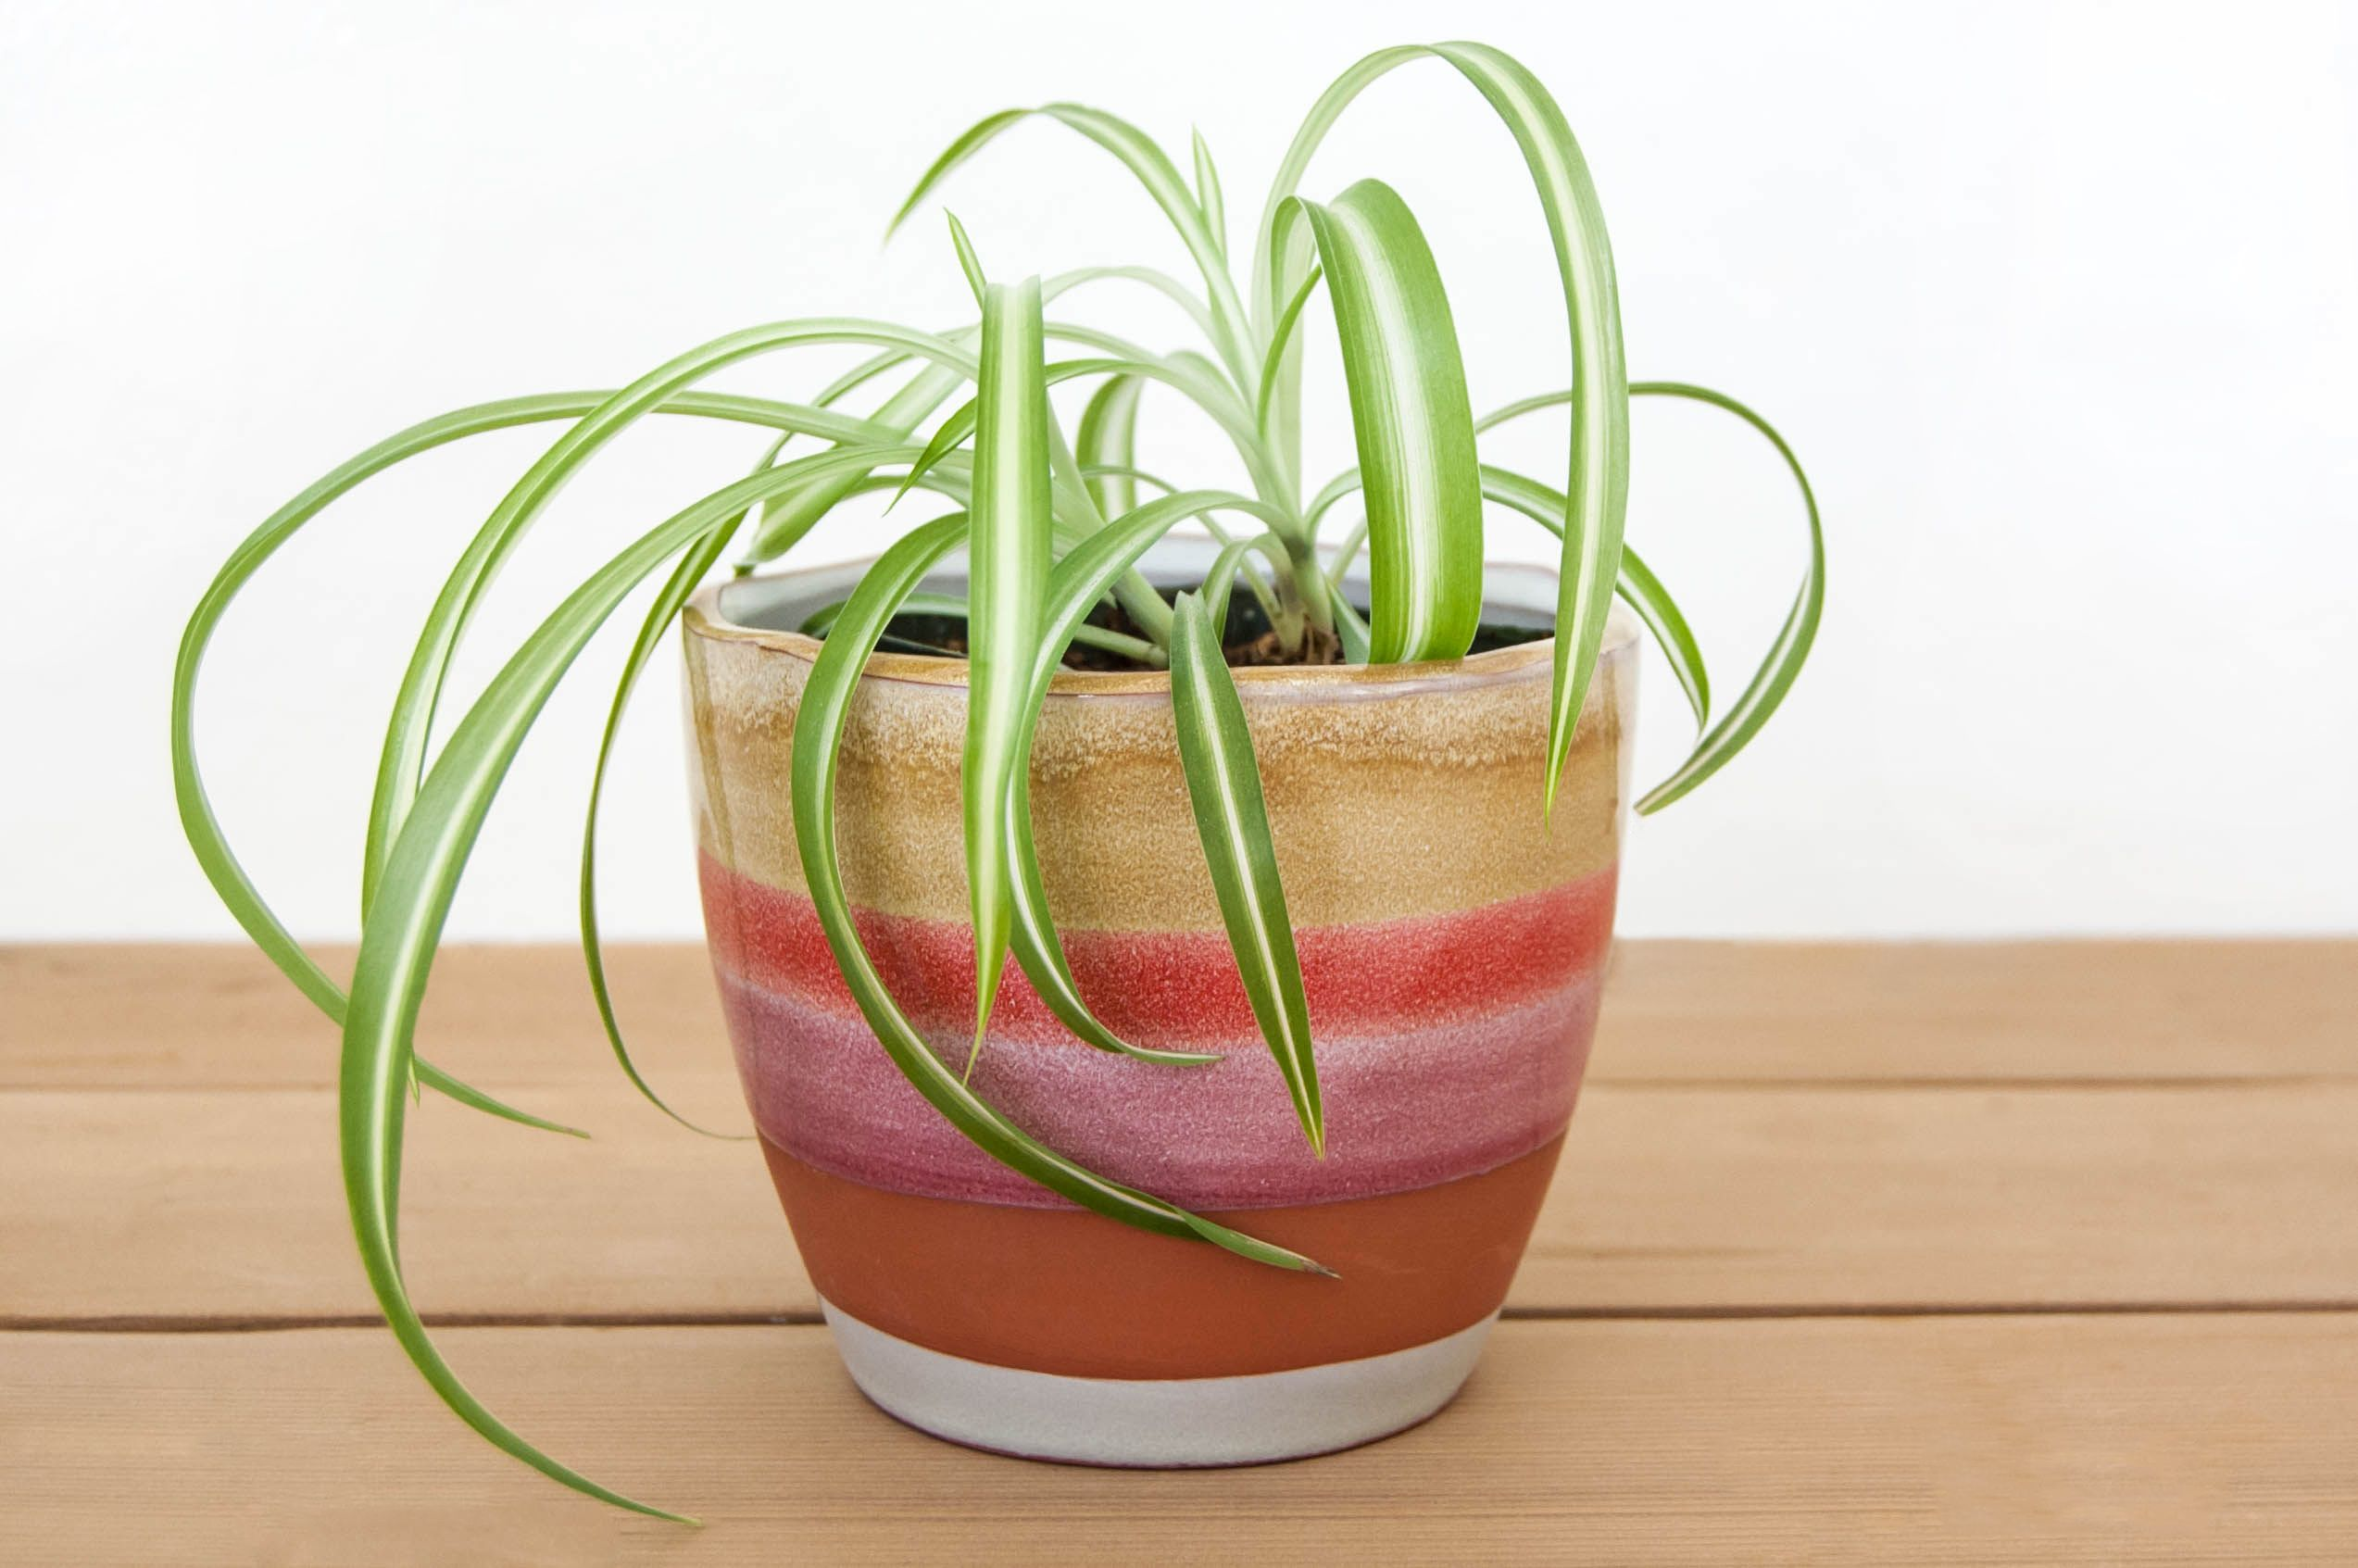 Spider plant tips for growing care and propagating spider plants